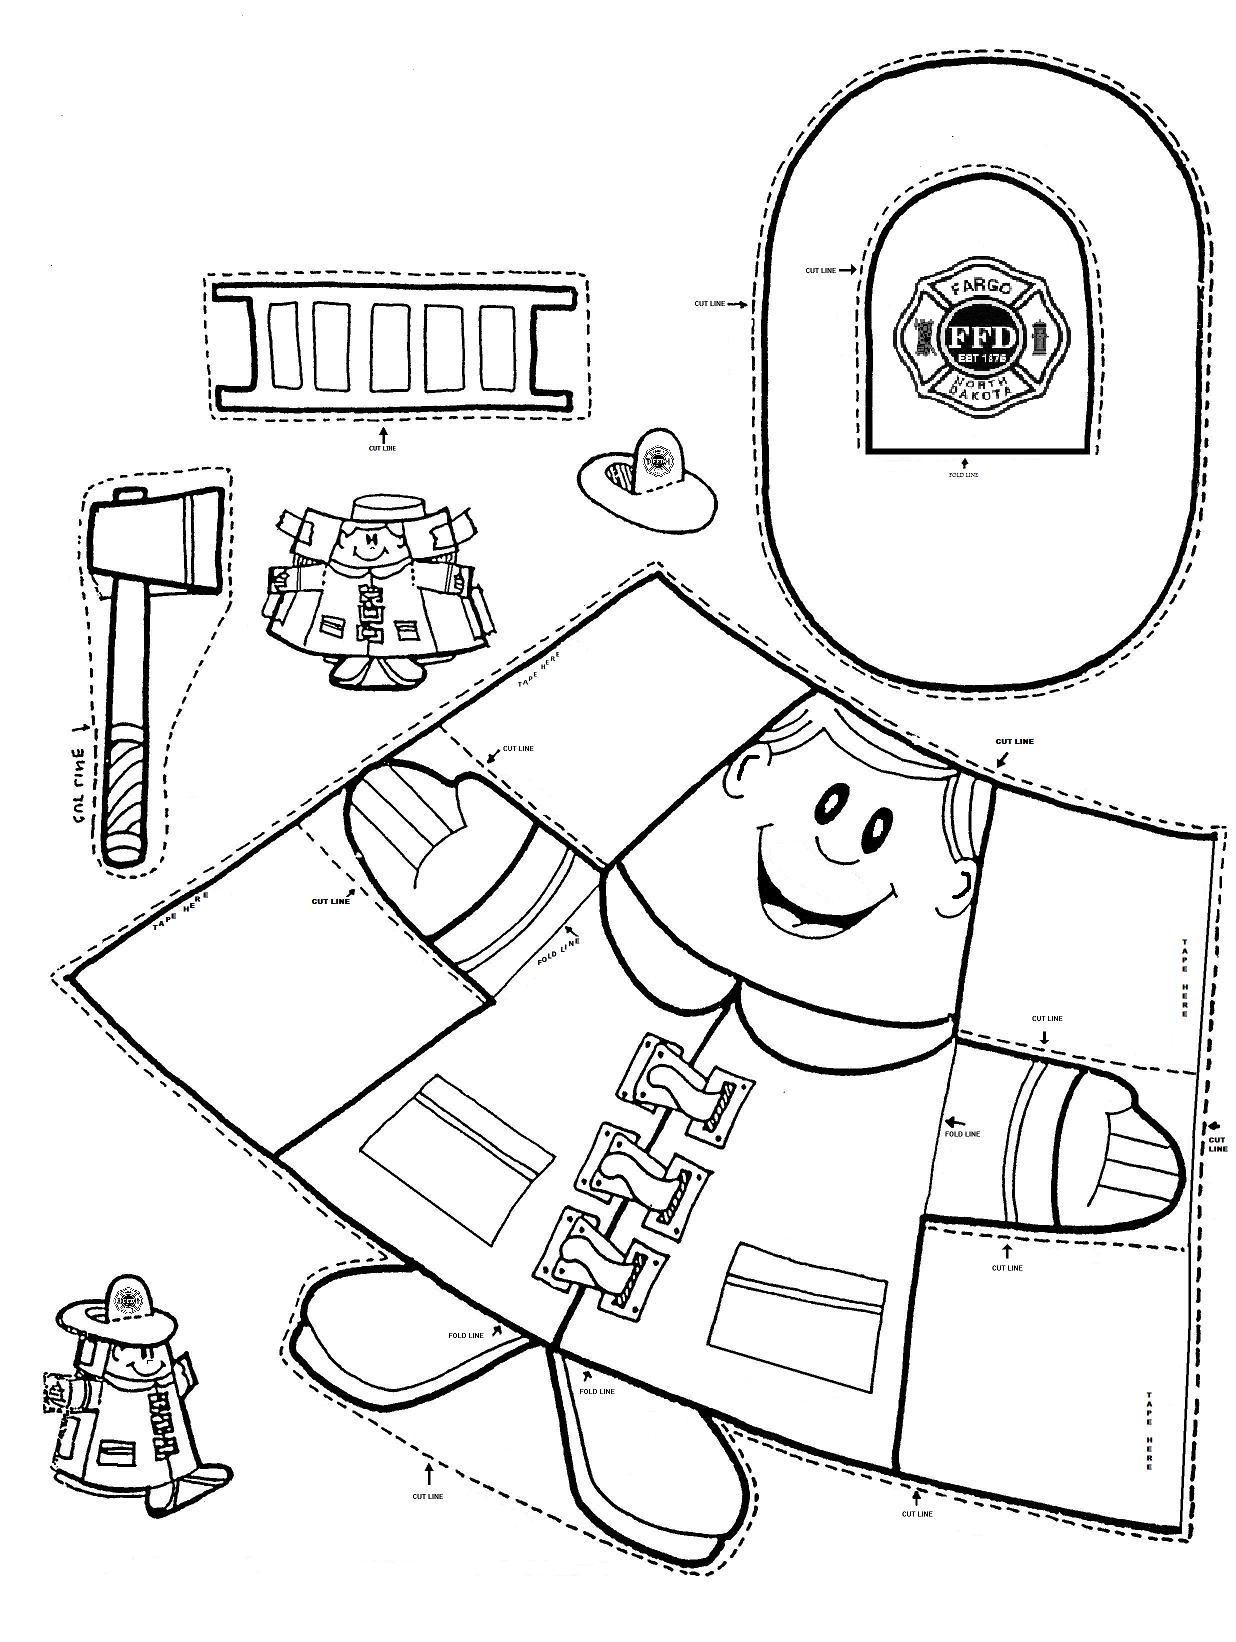 social story coloring pages - photo#24